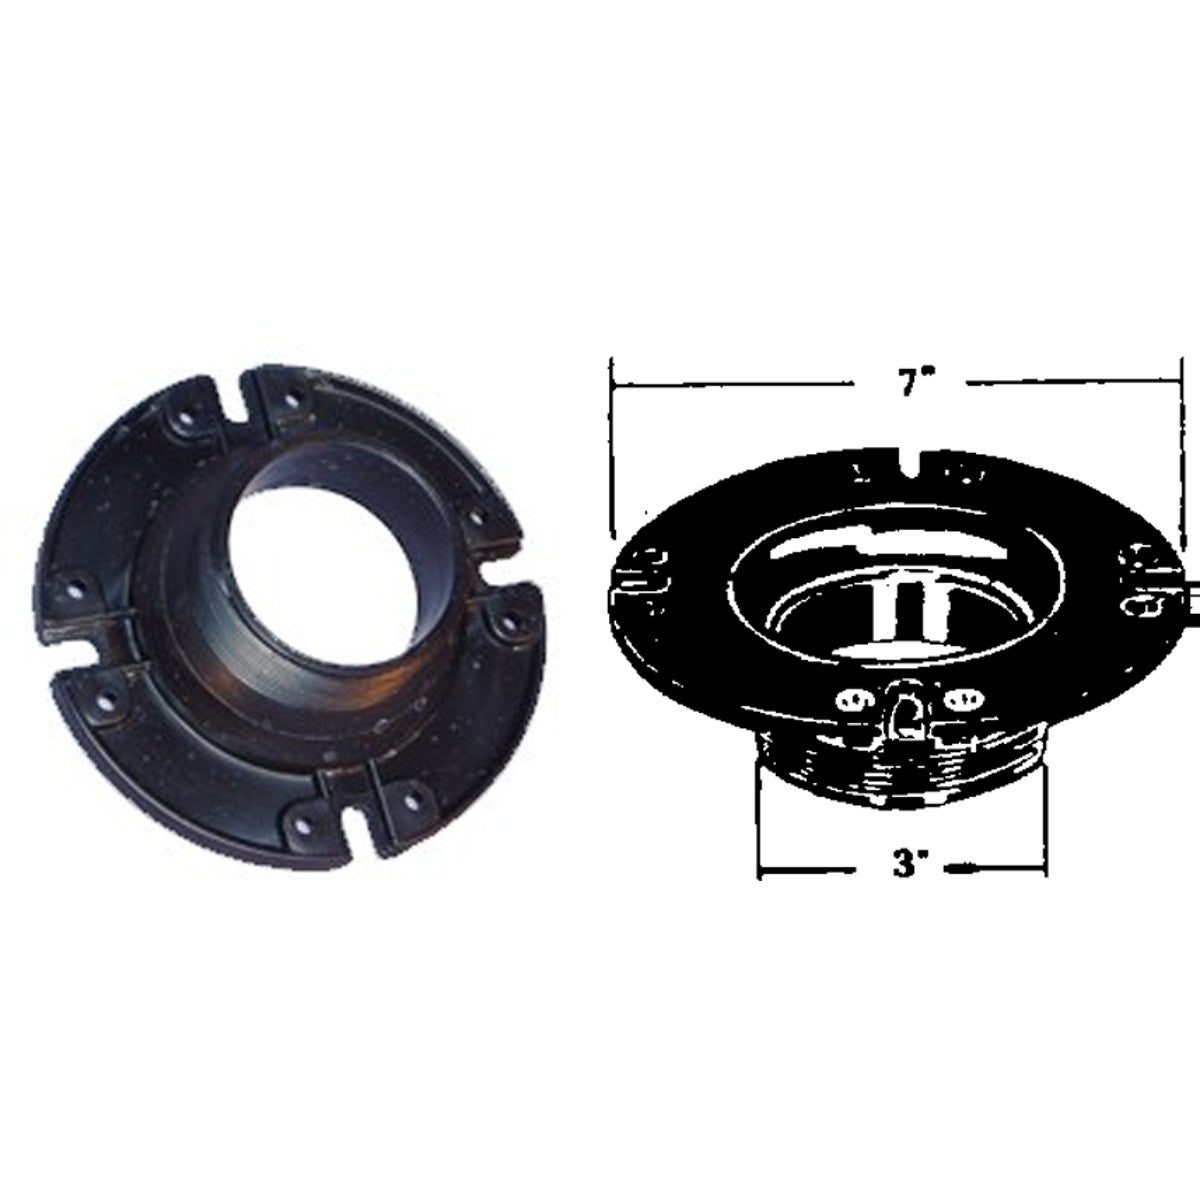 COMMODE FLANGE - P-110C by U S Hardware